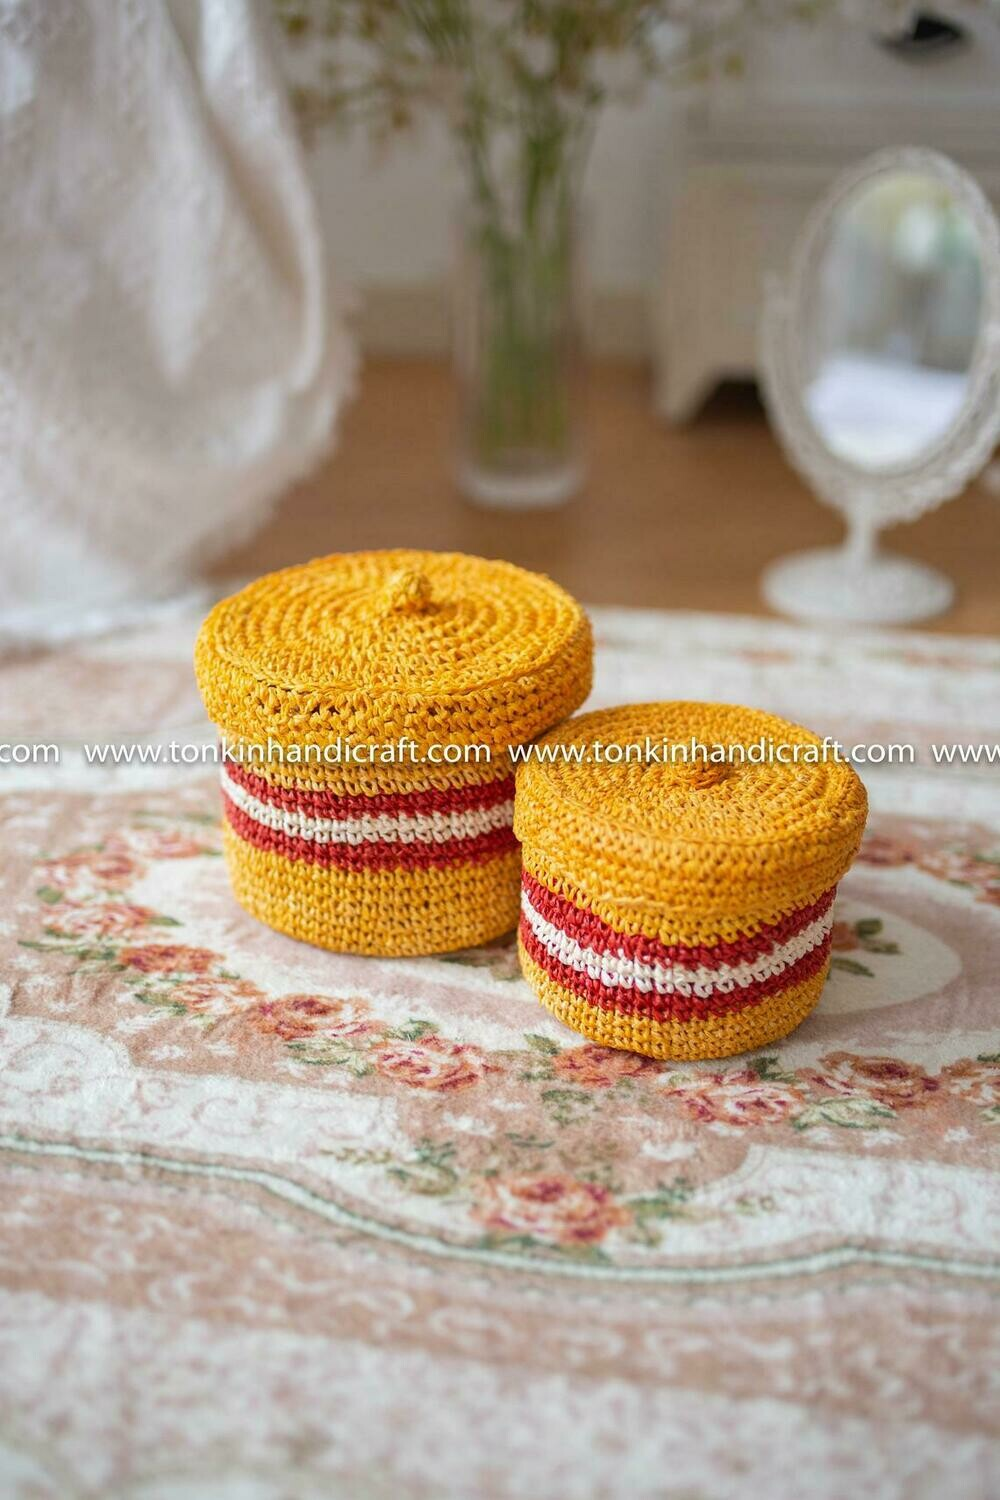 Set of 2 Braided Handwoven Natural Round Holder basket with lid